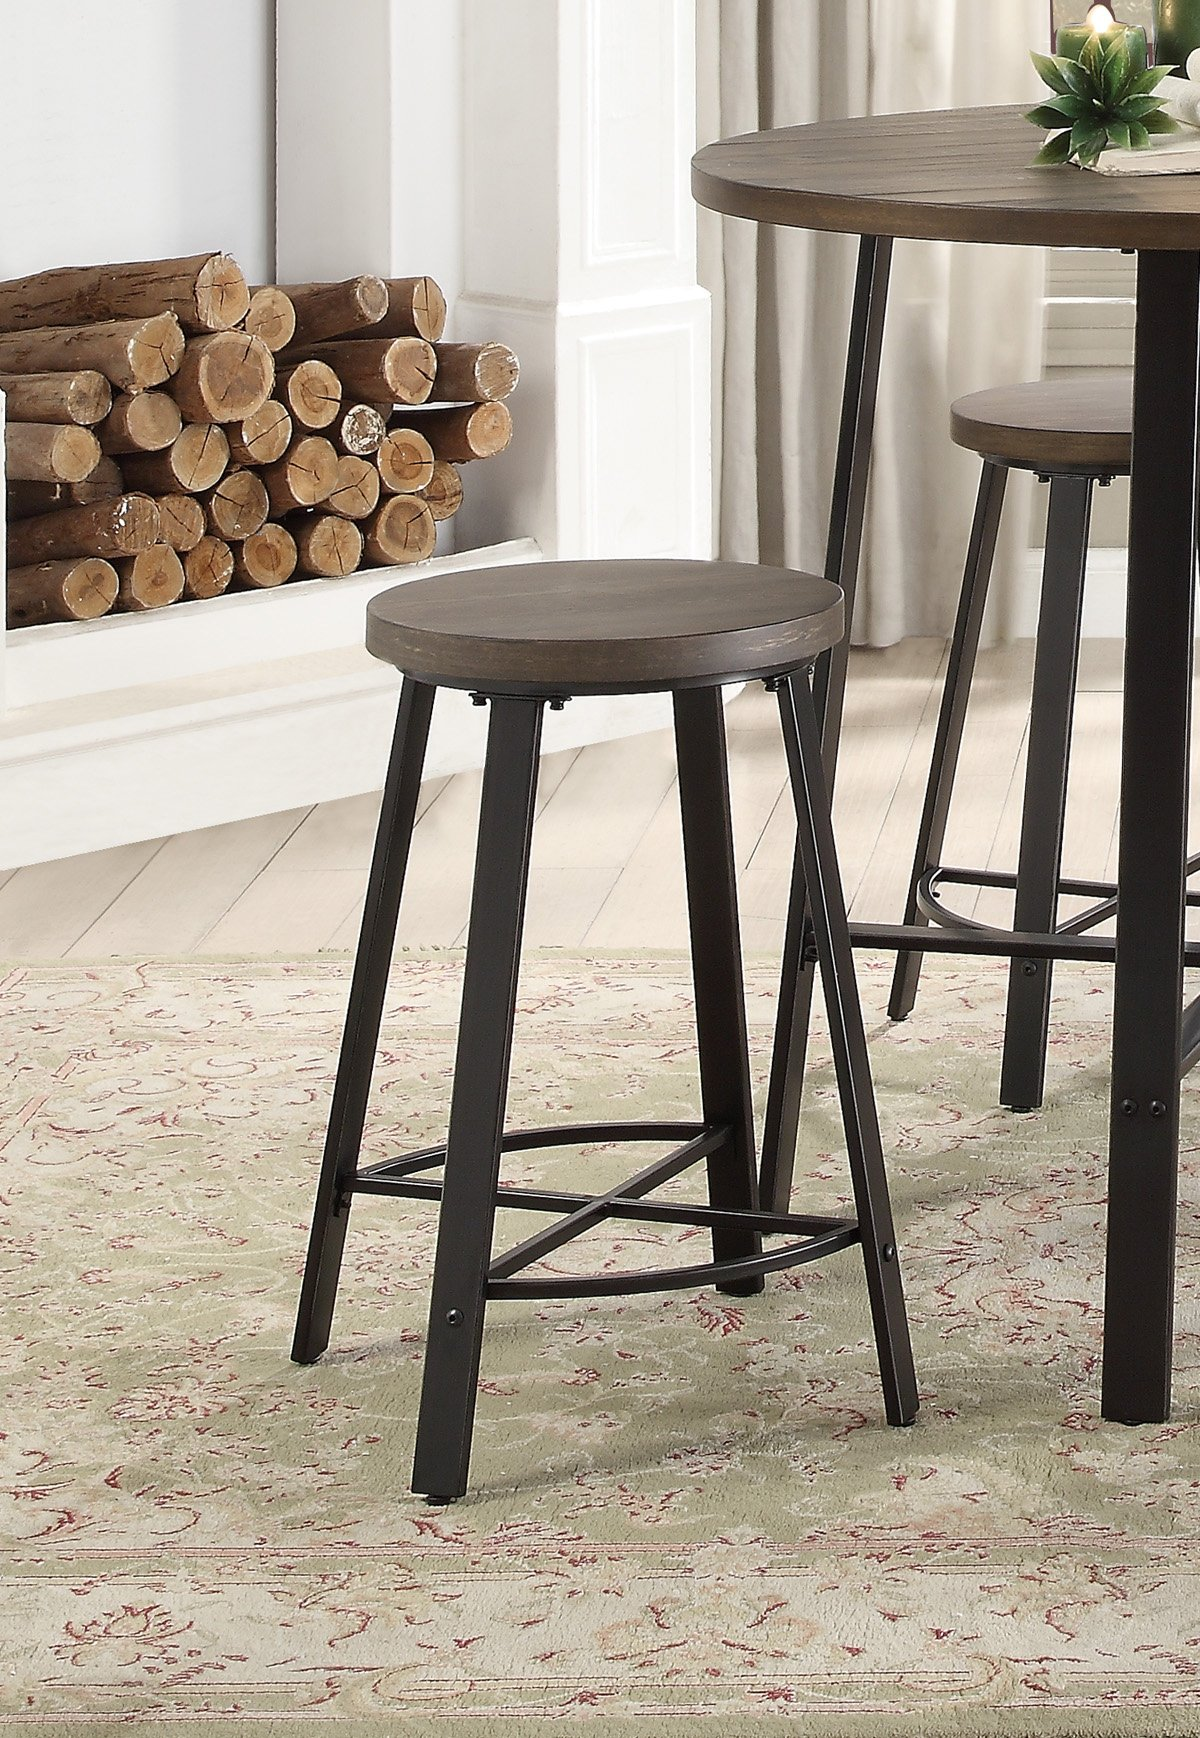 Oak And Metal 5 Piece Counter Height Dining Set Chevre